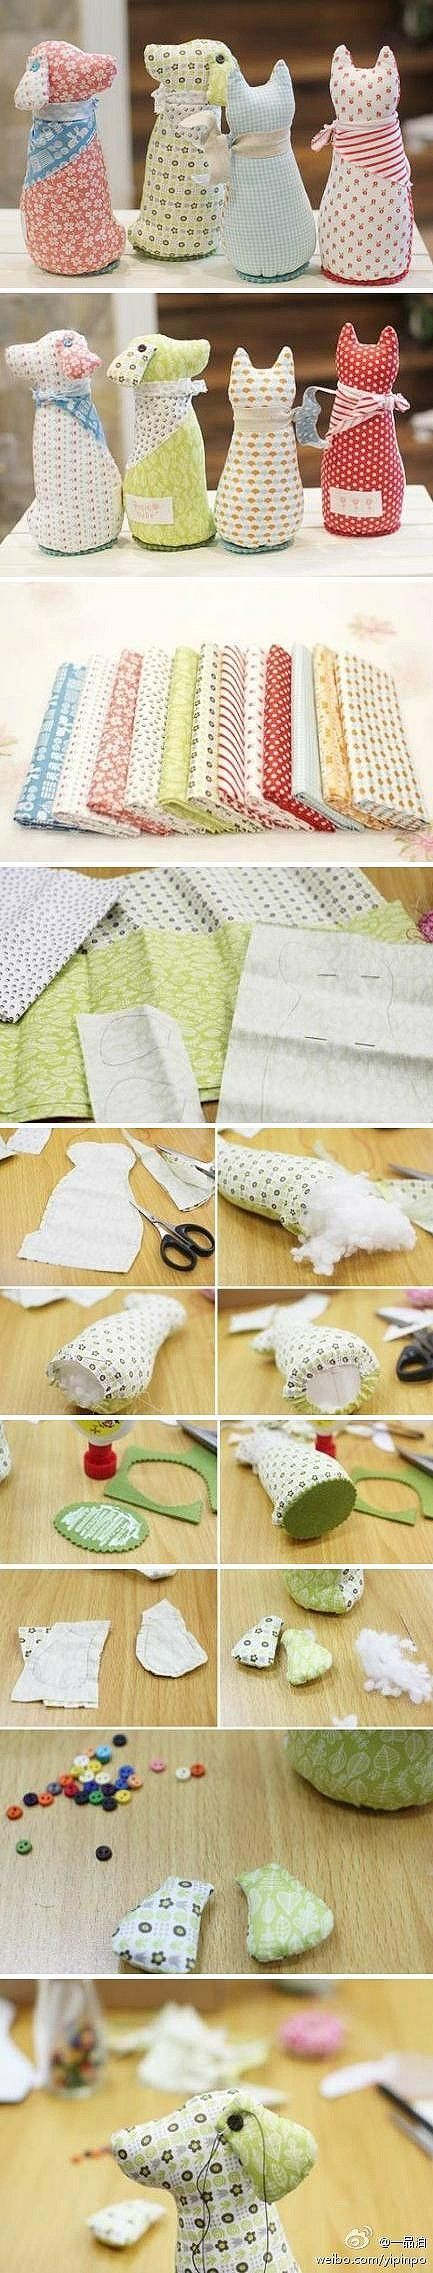 Seems to be really easy to do, and they're really cute!